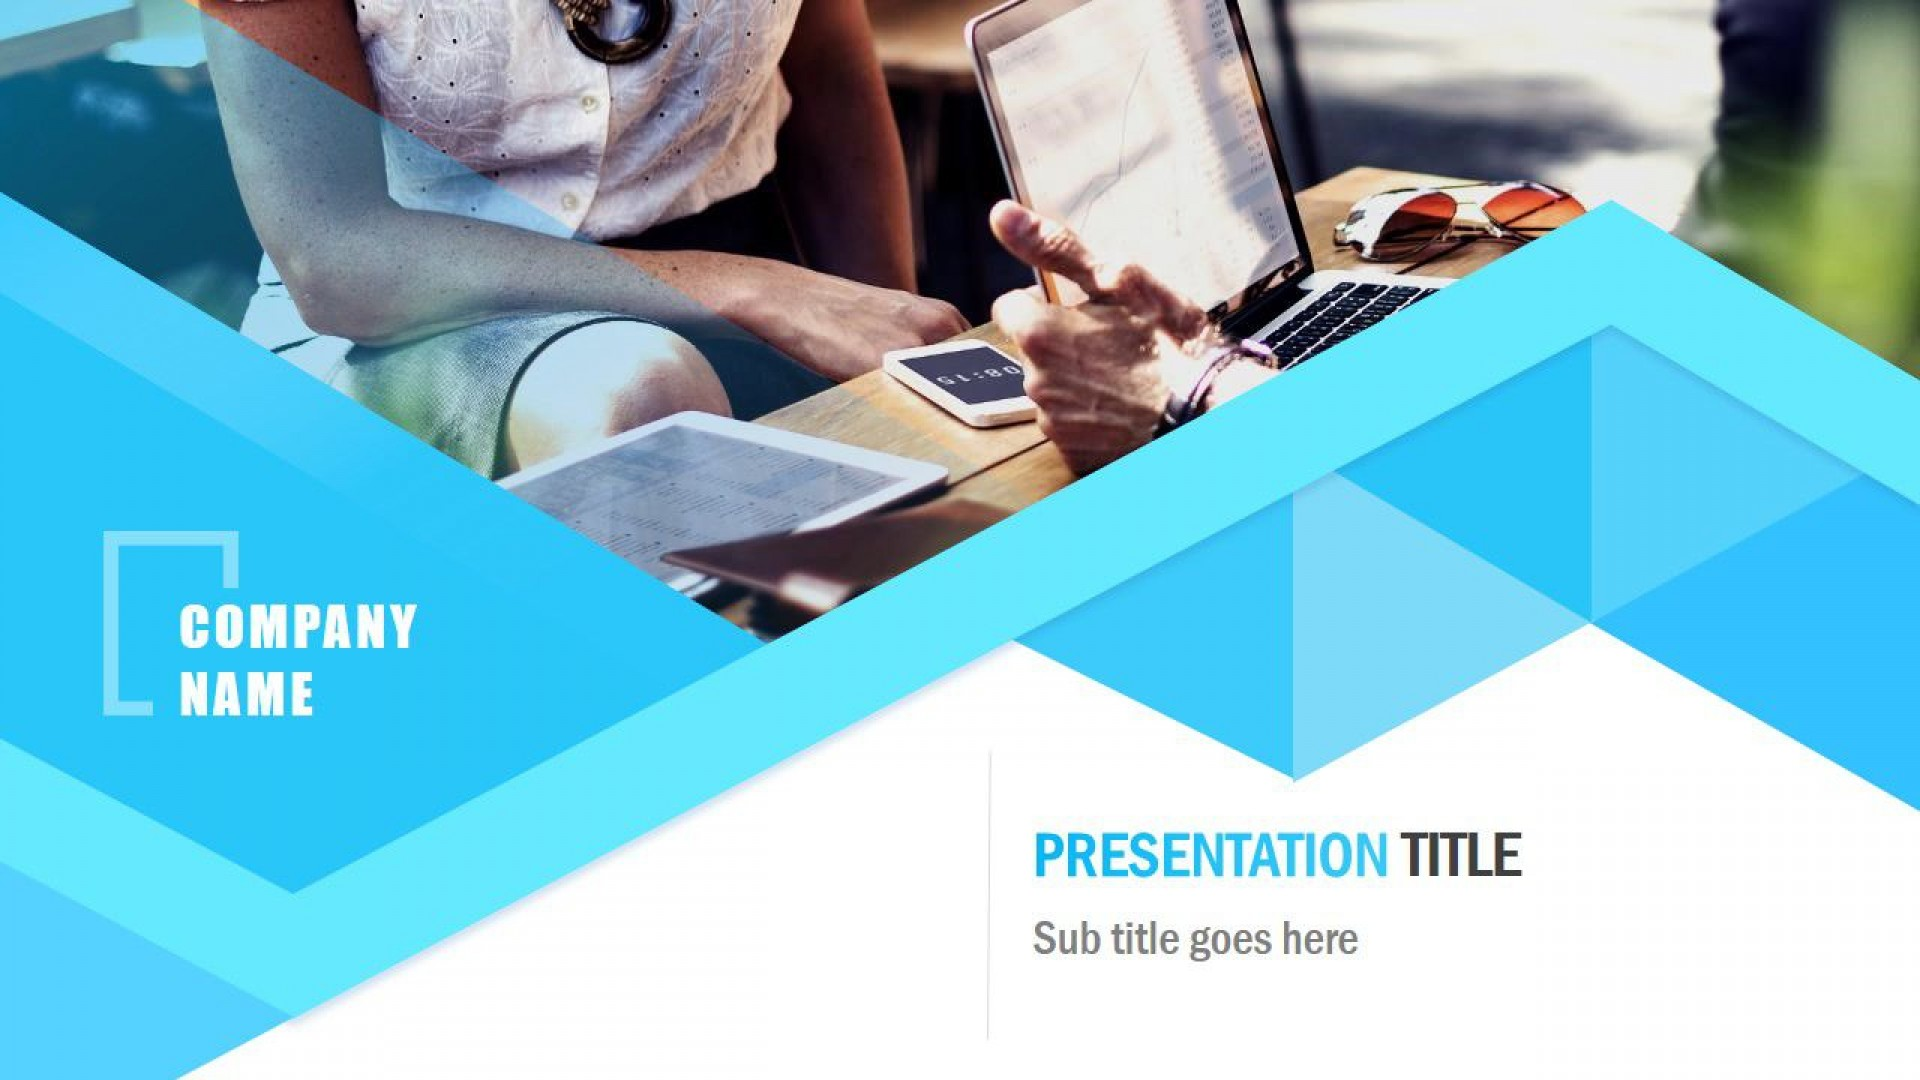 004 Outstanding Download Free Powerpoint Template Idea  Templates Professional 2018 Ppt For Busines Presentation Education /1920